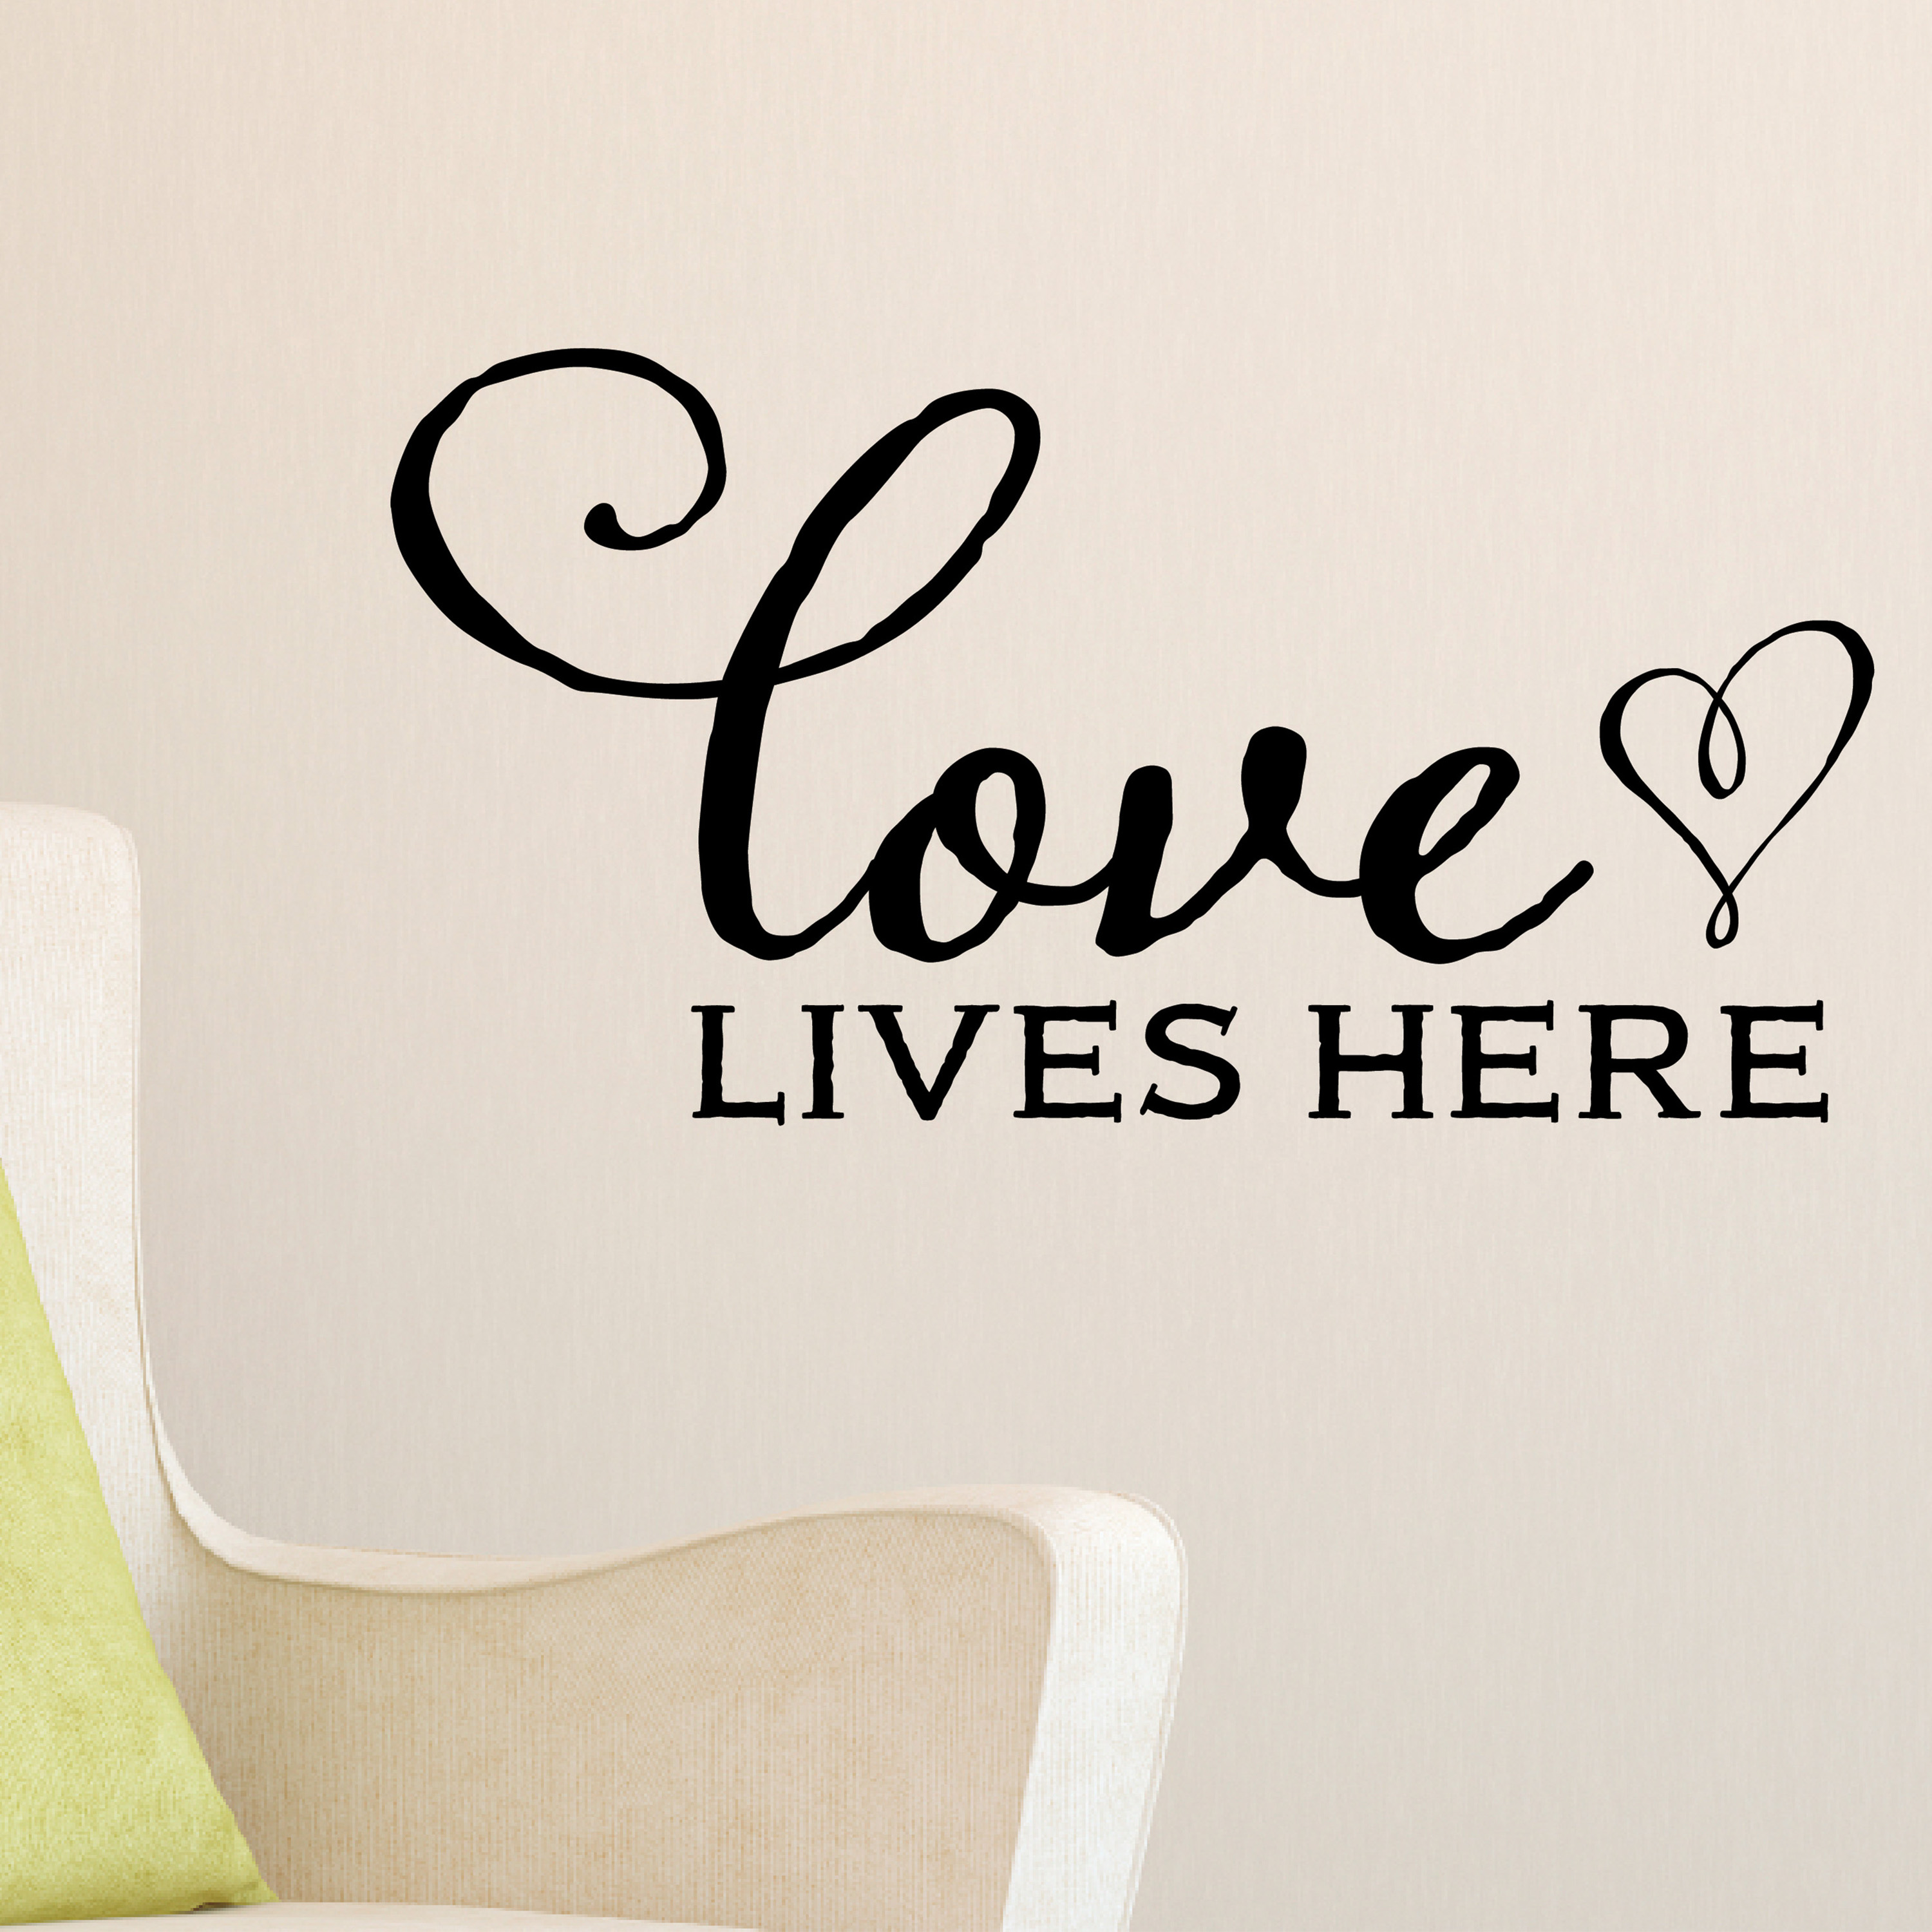 Love Lives Here Vinyl Wall Decal By Wild Eyes Signs Family Picture Wall Decal Living Room Vinyl Sticker Kitchen Blessing Sign Master Bedroom